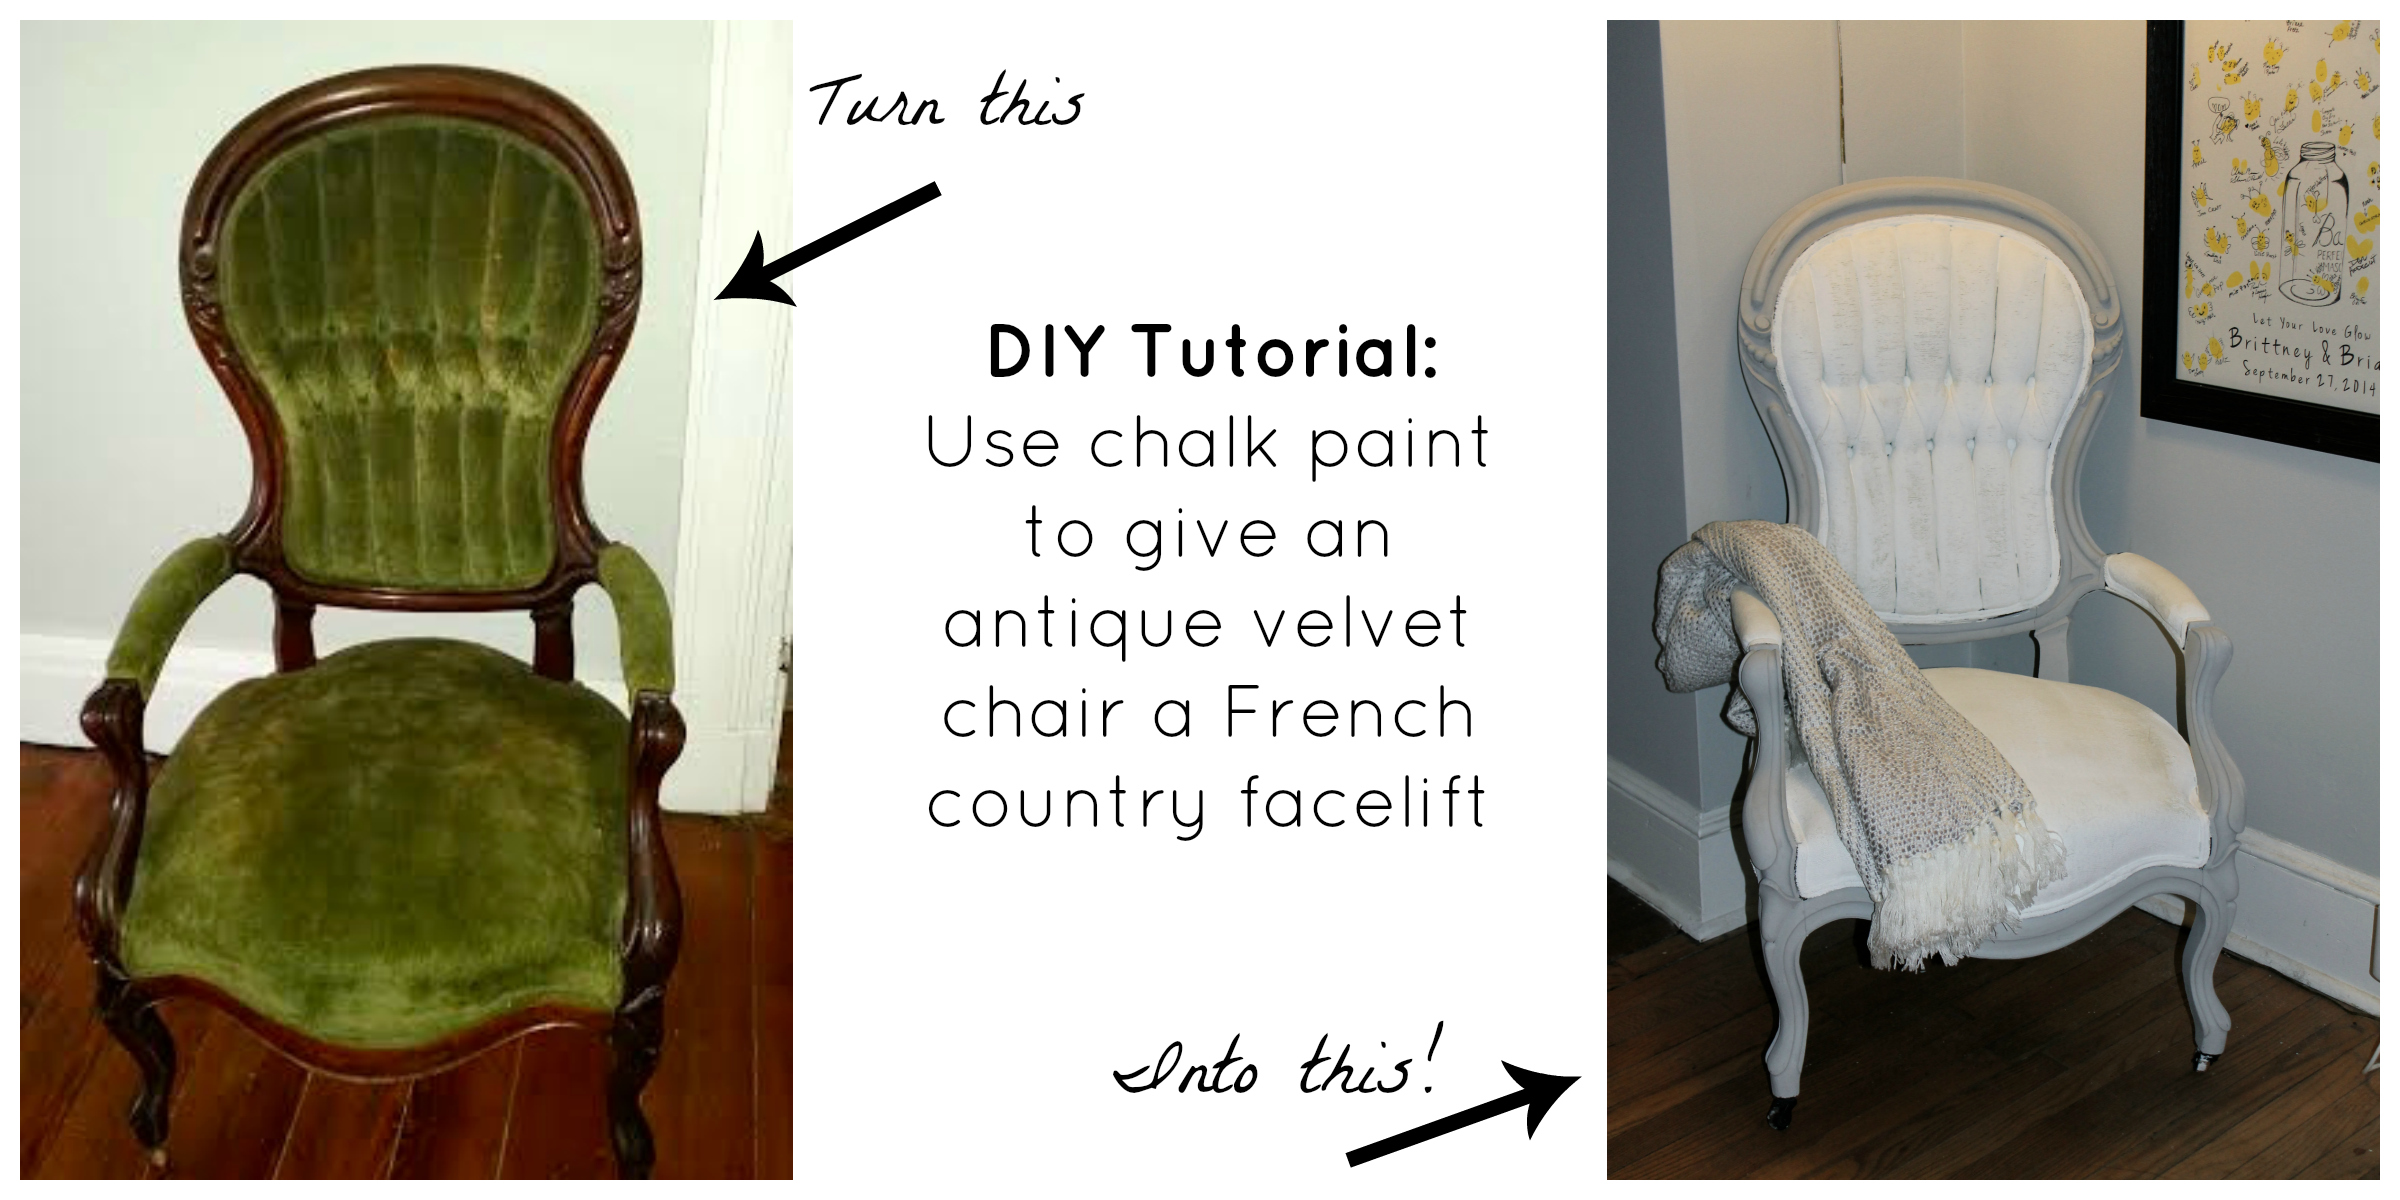 Diy Antique Chair Facelift With Chalk Paint My Kind Of Glam